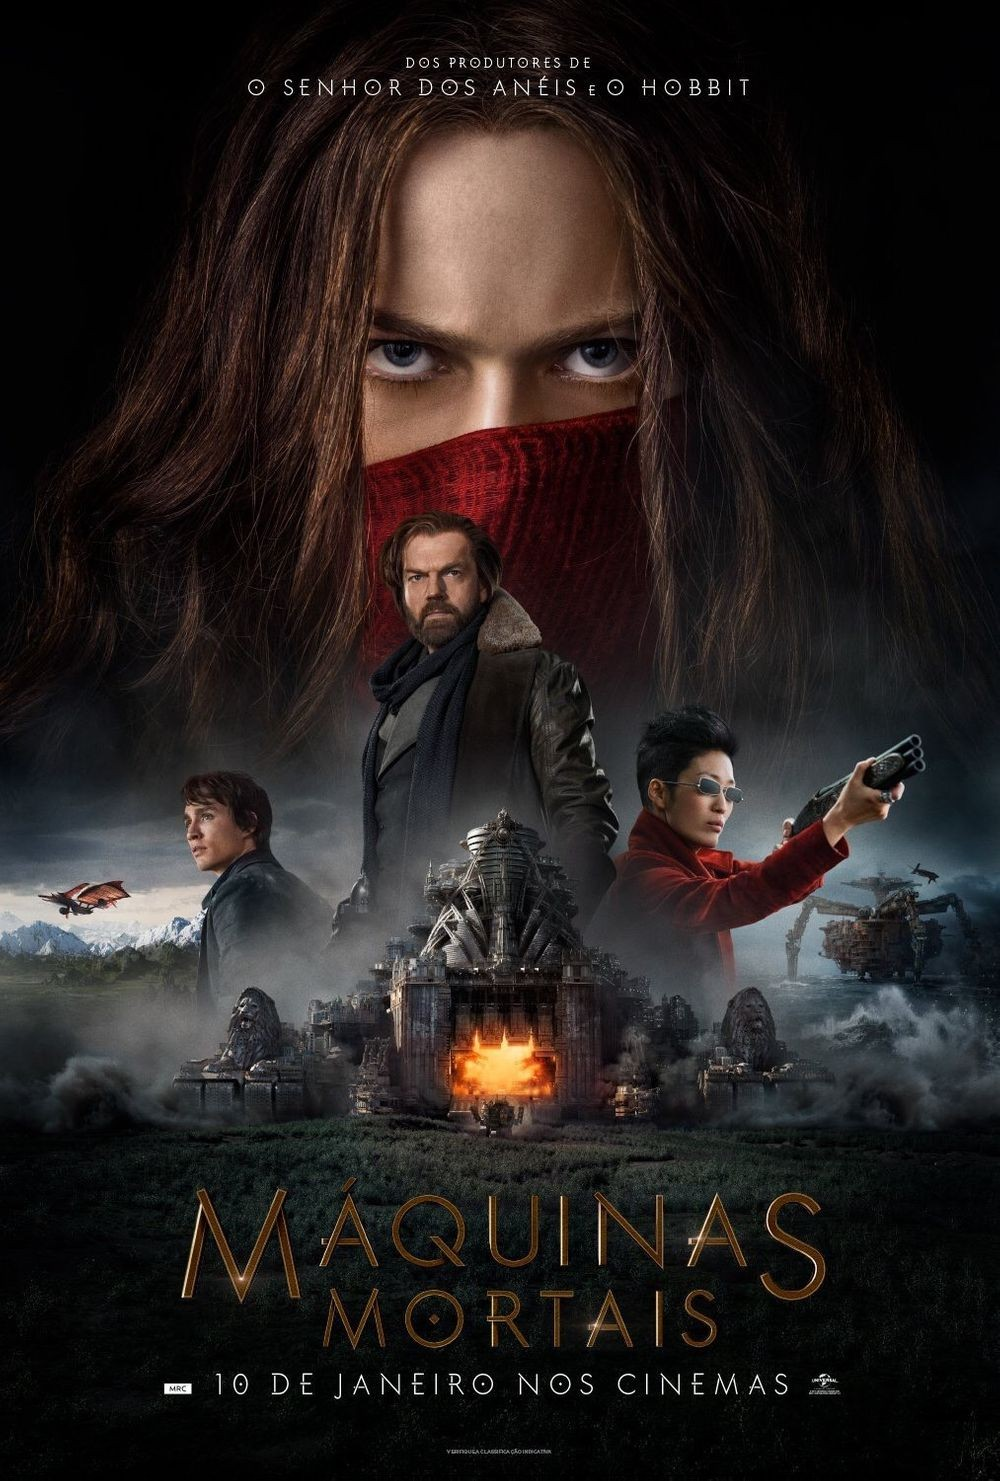 Mortal Engines (2018) 3D HSBS Dual Audio Hindi 1080p BDRip 2.1GB ESubs Download